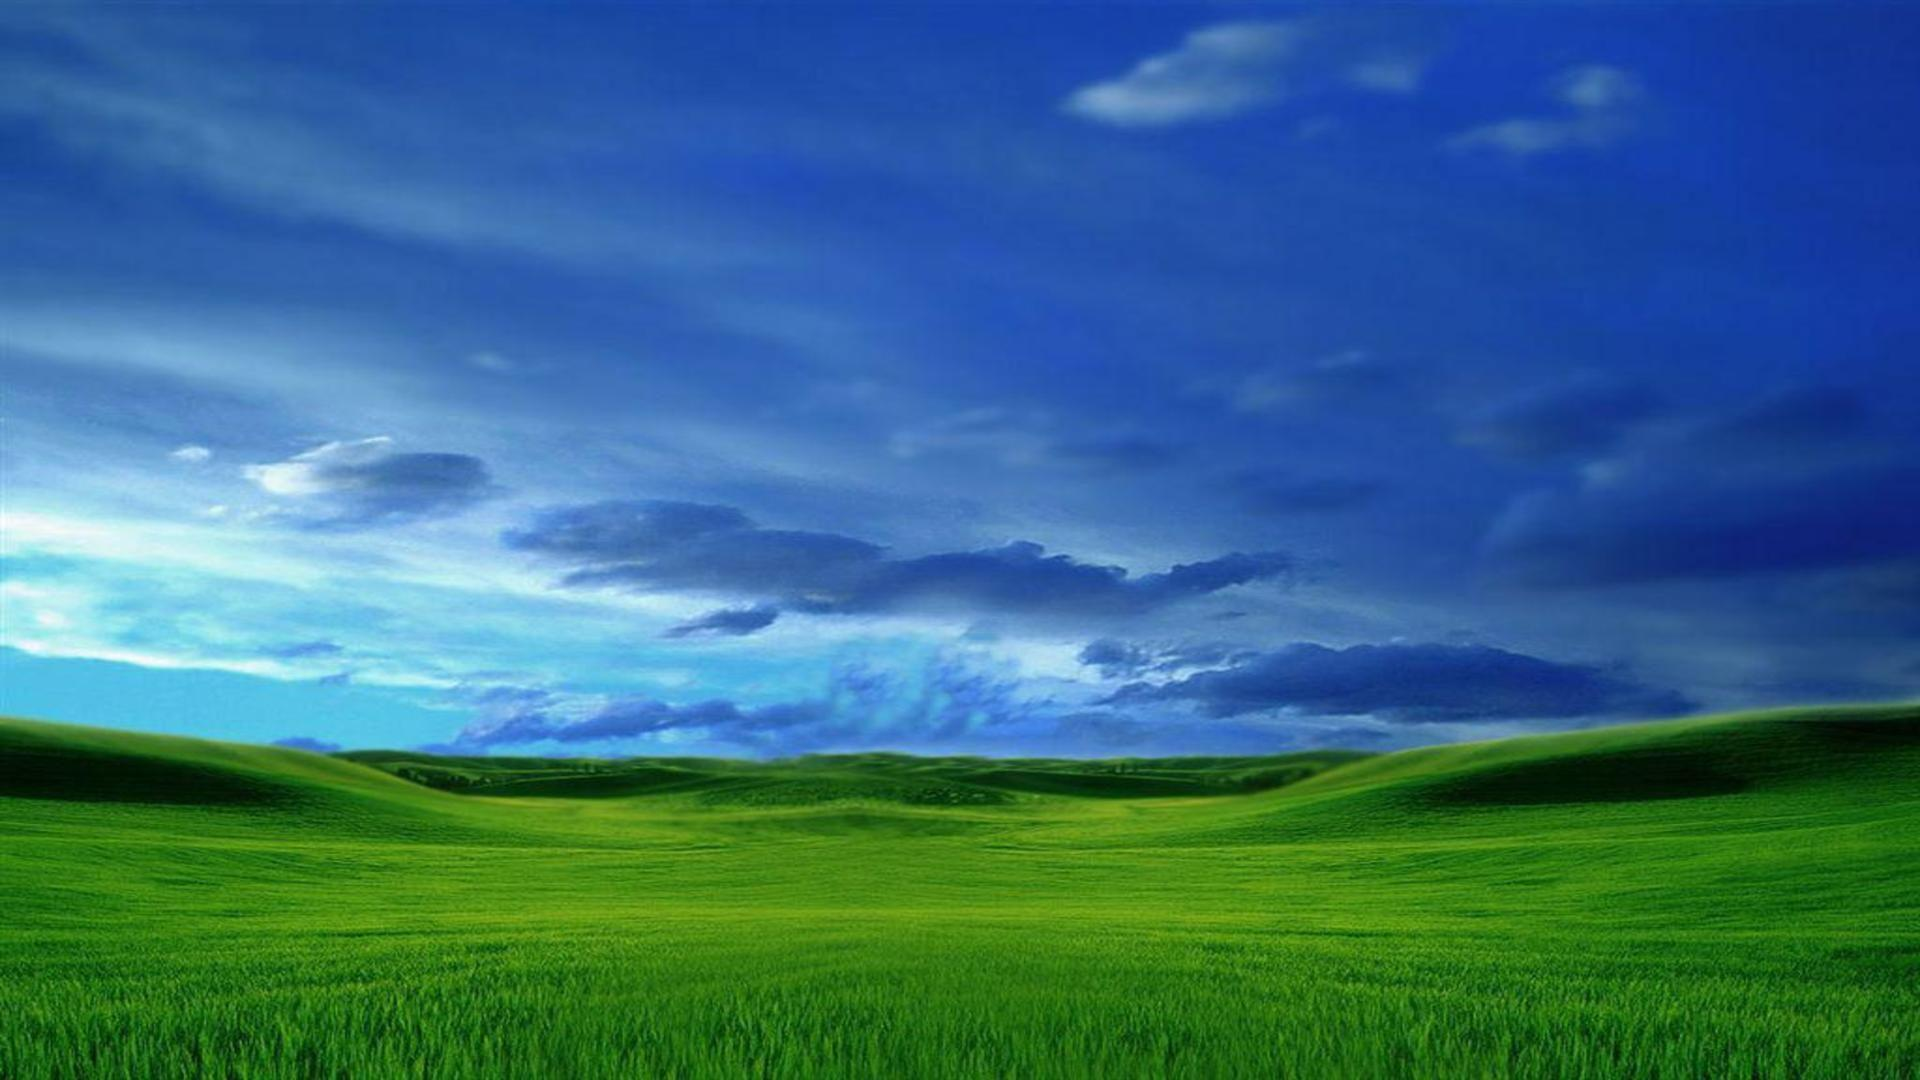 Microsoft Desktop Backgrounds 1920x1080